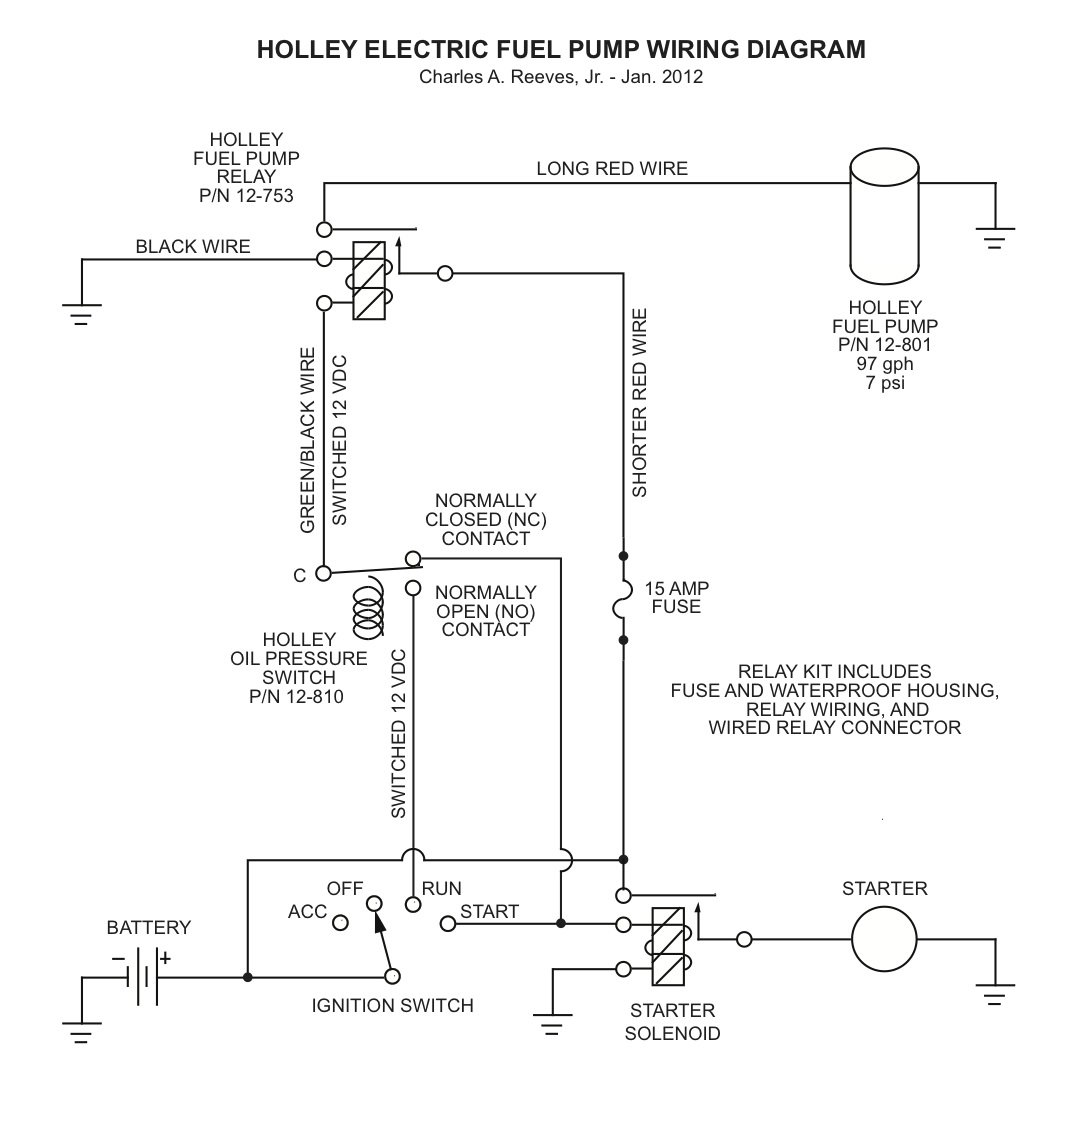 hight resolution of 2000 mustang gt fuel pump relay location mustang fuel pump relay 99 mustang fuel pump relay